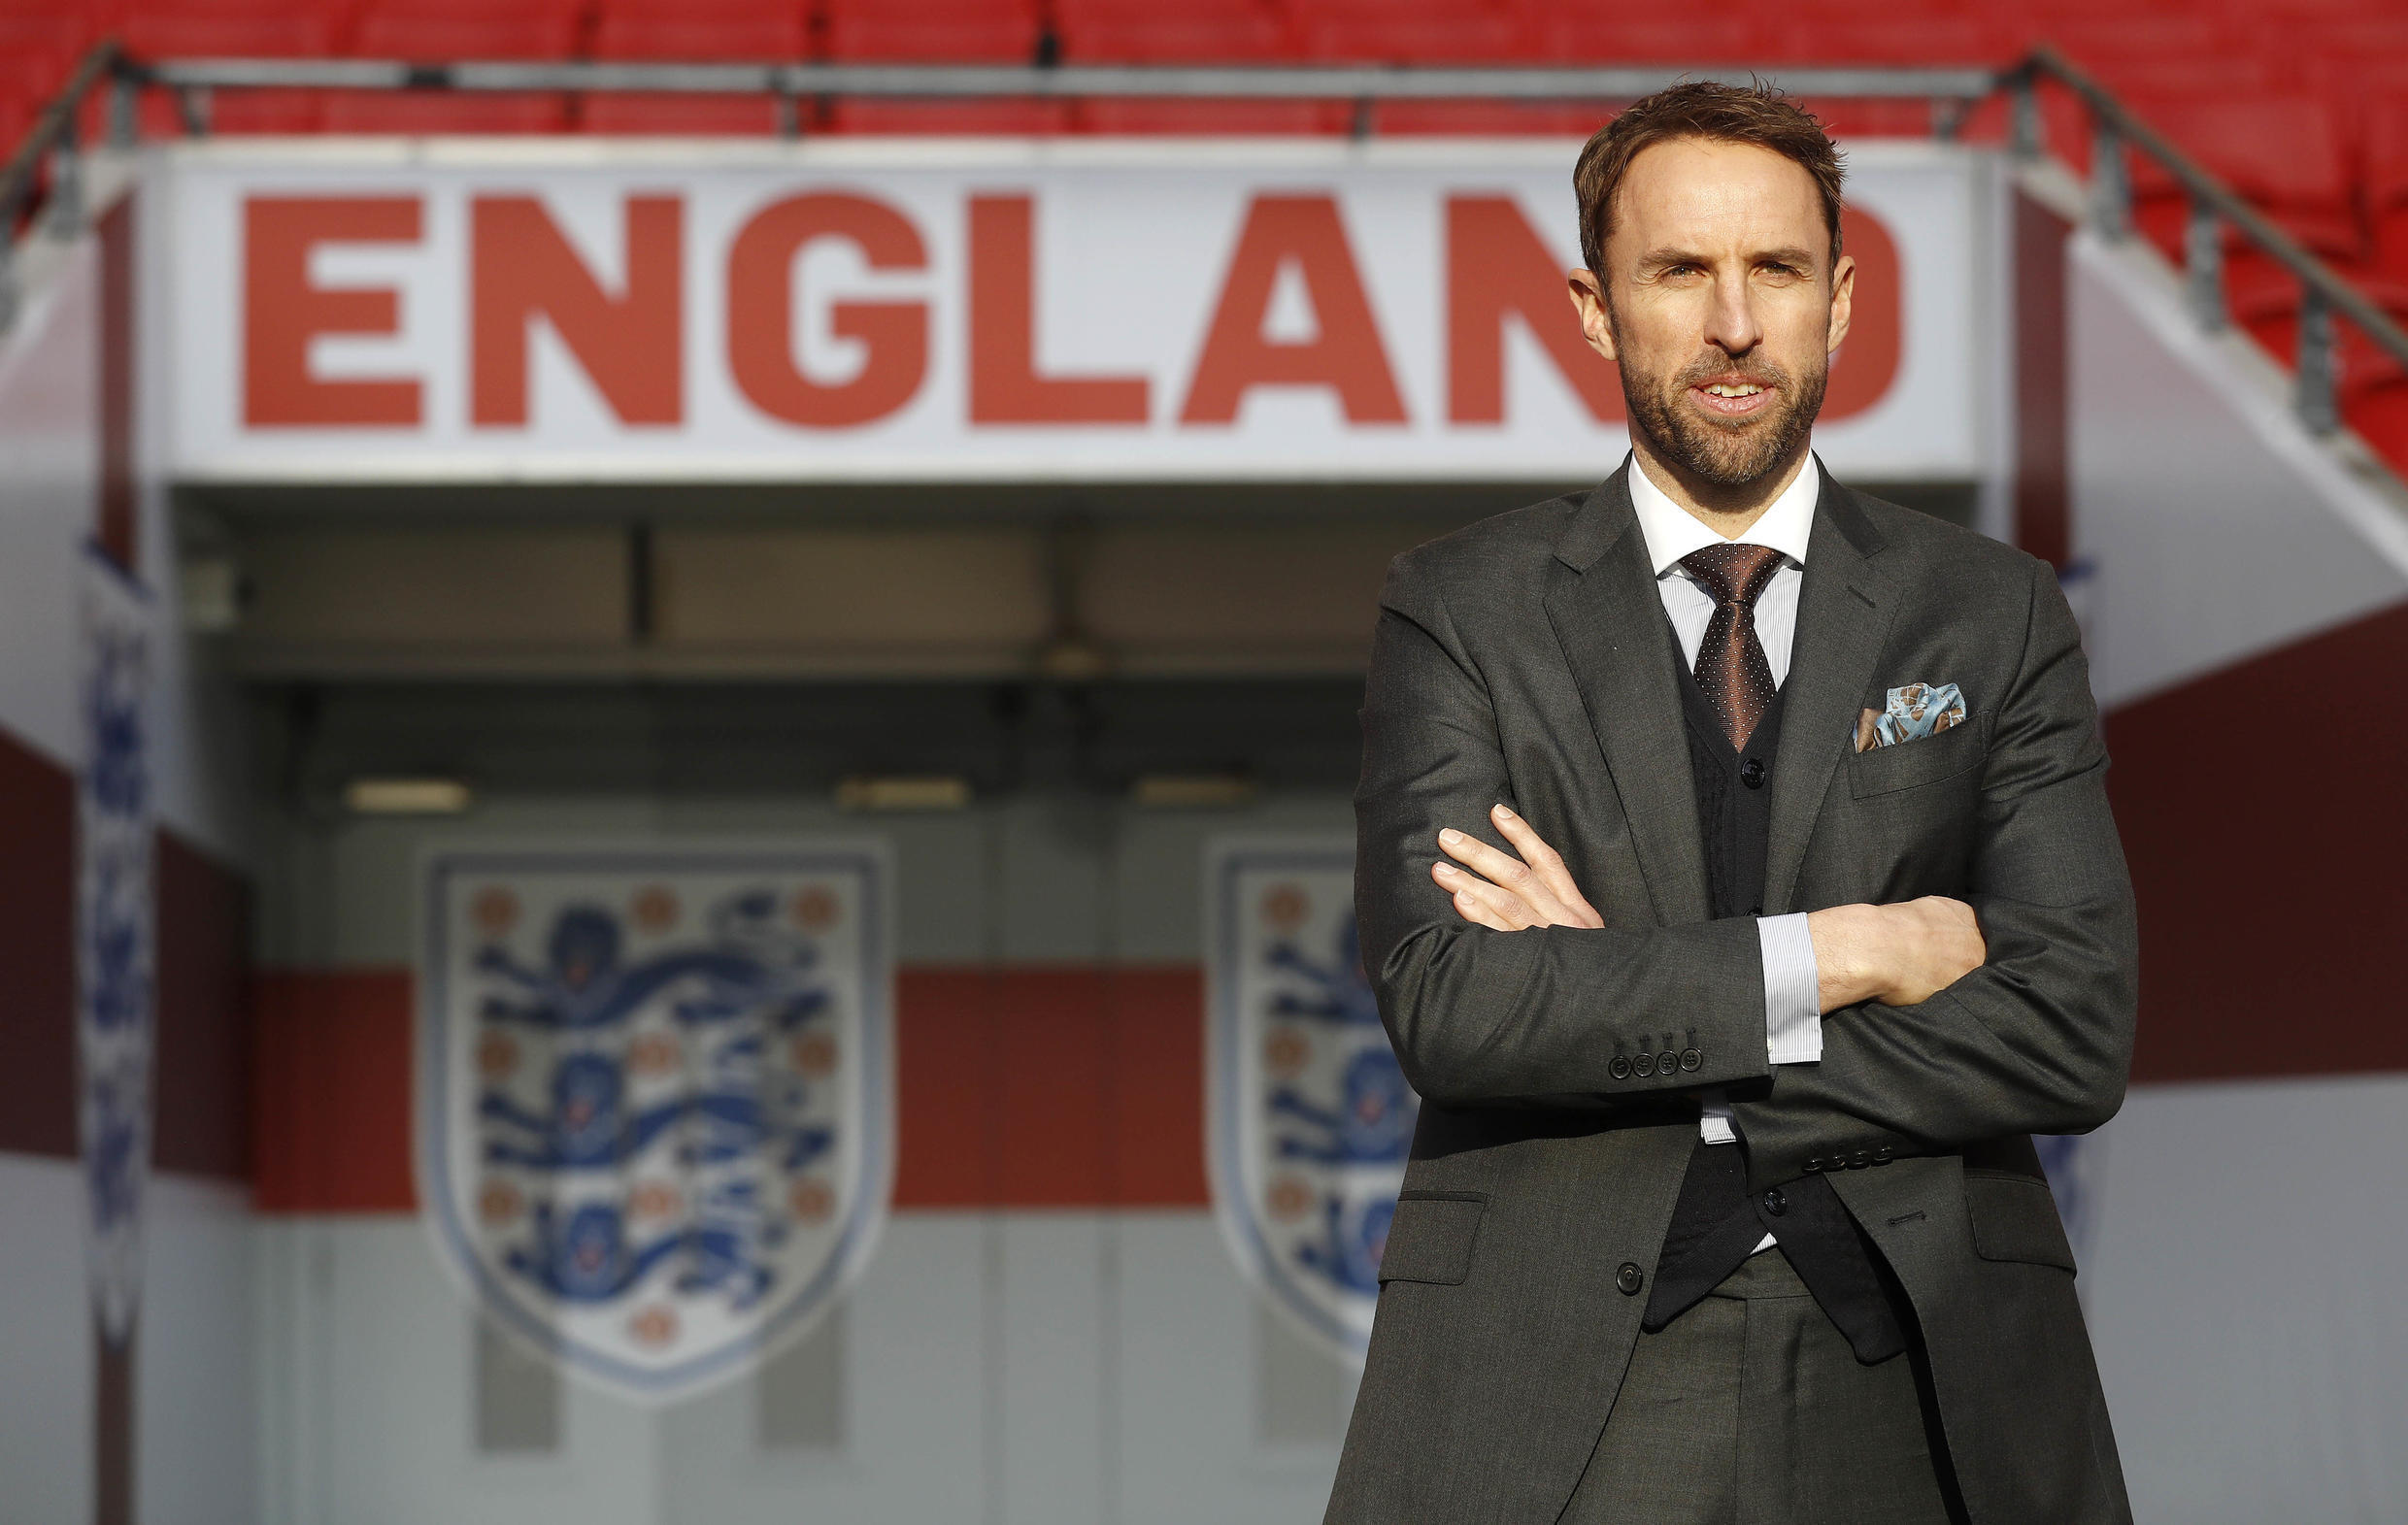 Gareth Southgate when he took over from Sam Allardyce as England manager.